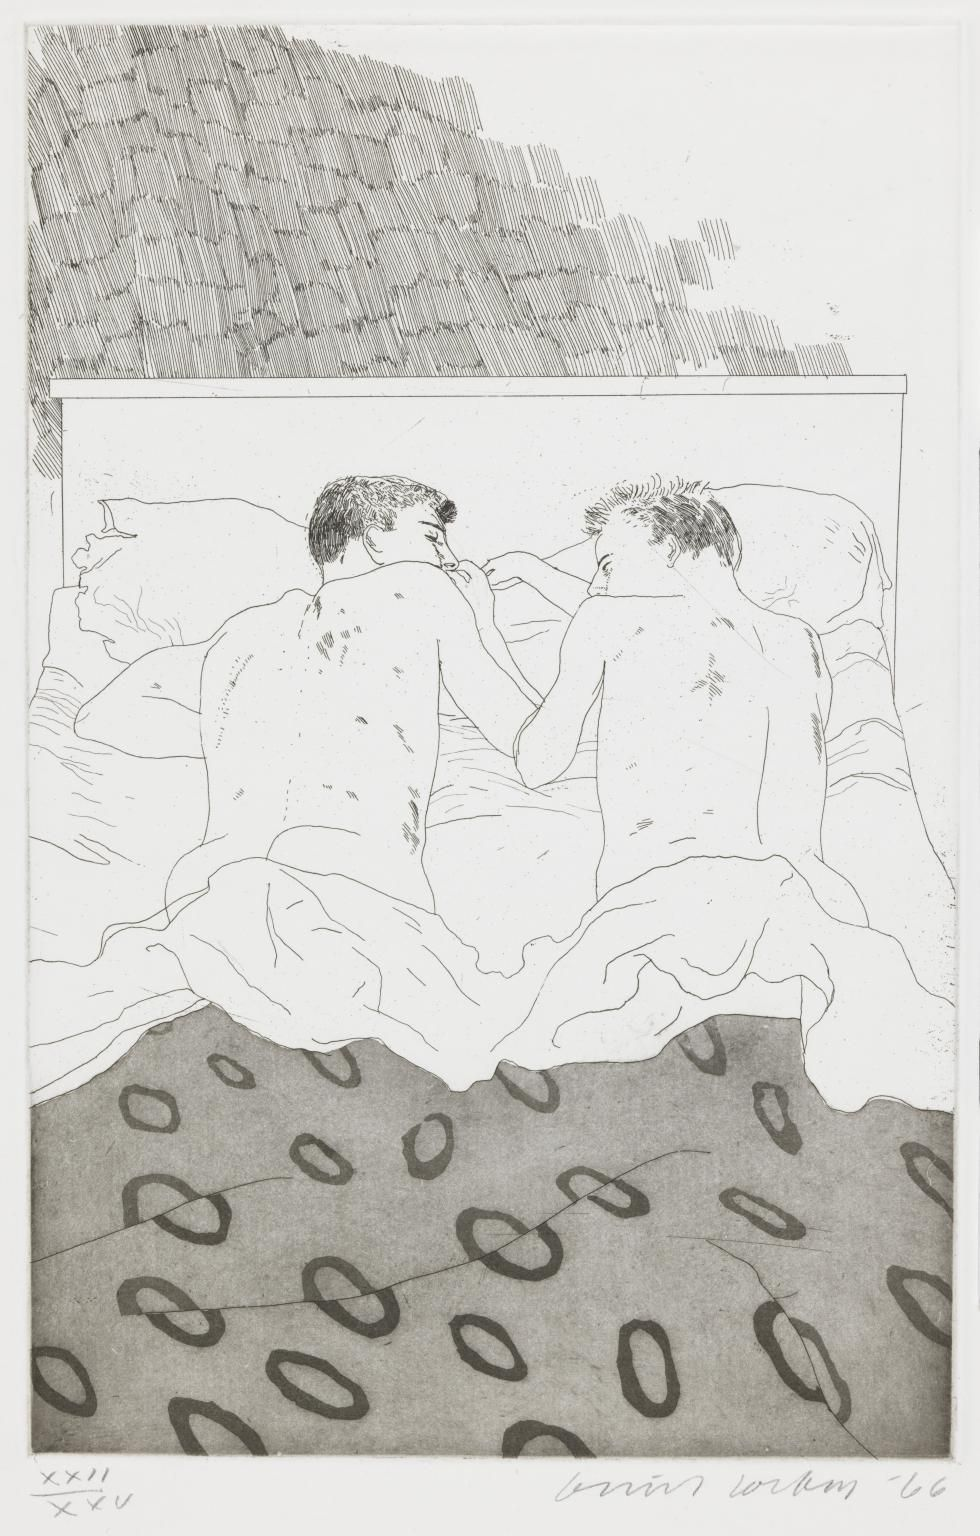 "David Hockney, Two Boys Aged 23 or 24, 1966, Etching and aquatint on paper, 13 13/16"" × 8 7/8"" at Anita Rogers Gallery"